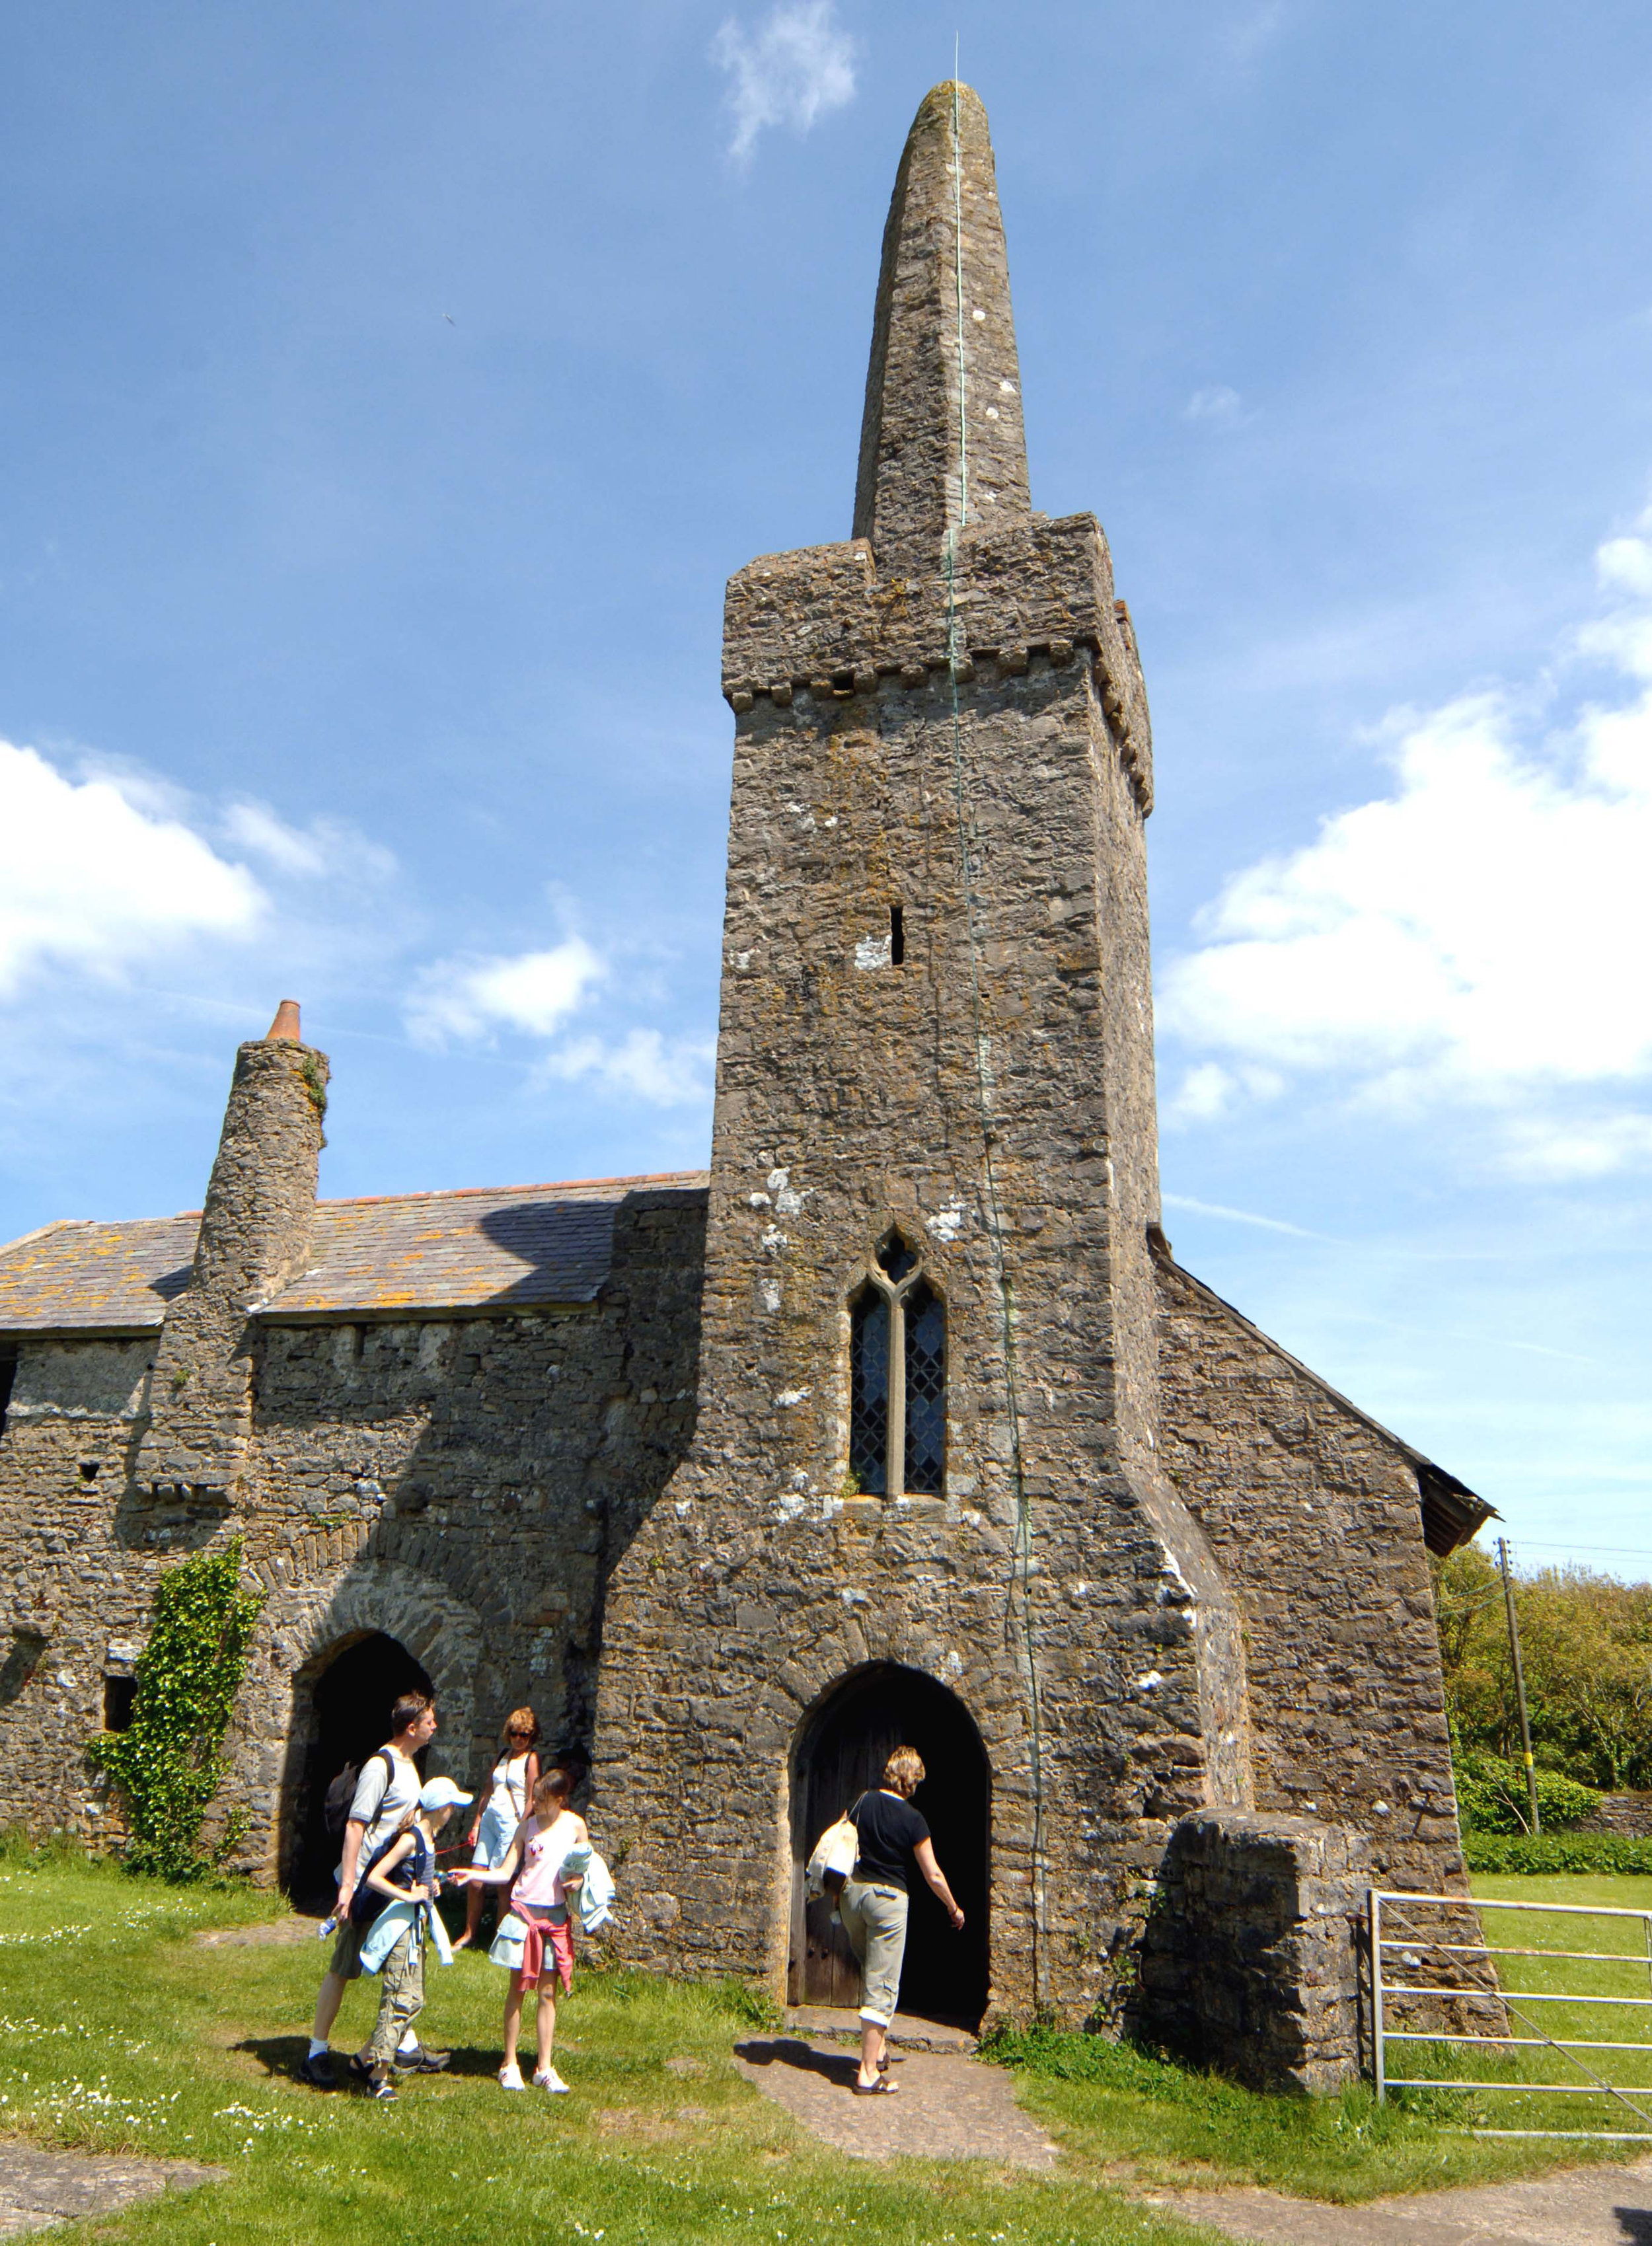 St Illtyd's Church